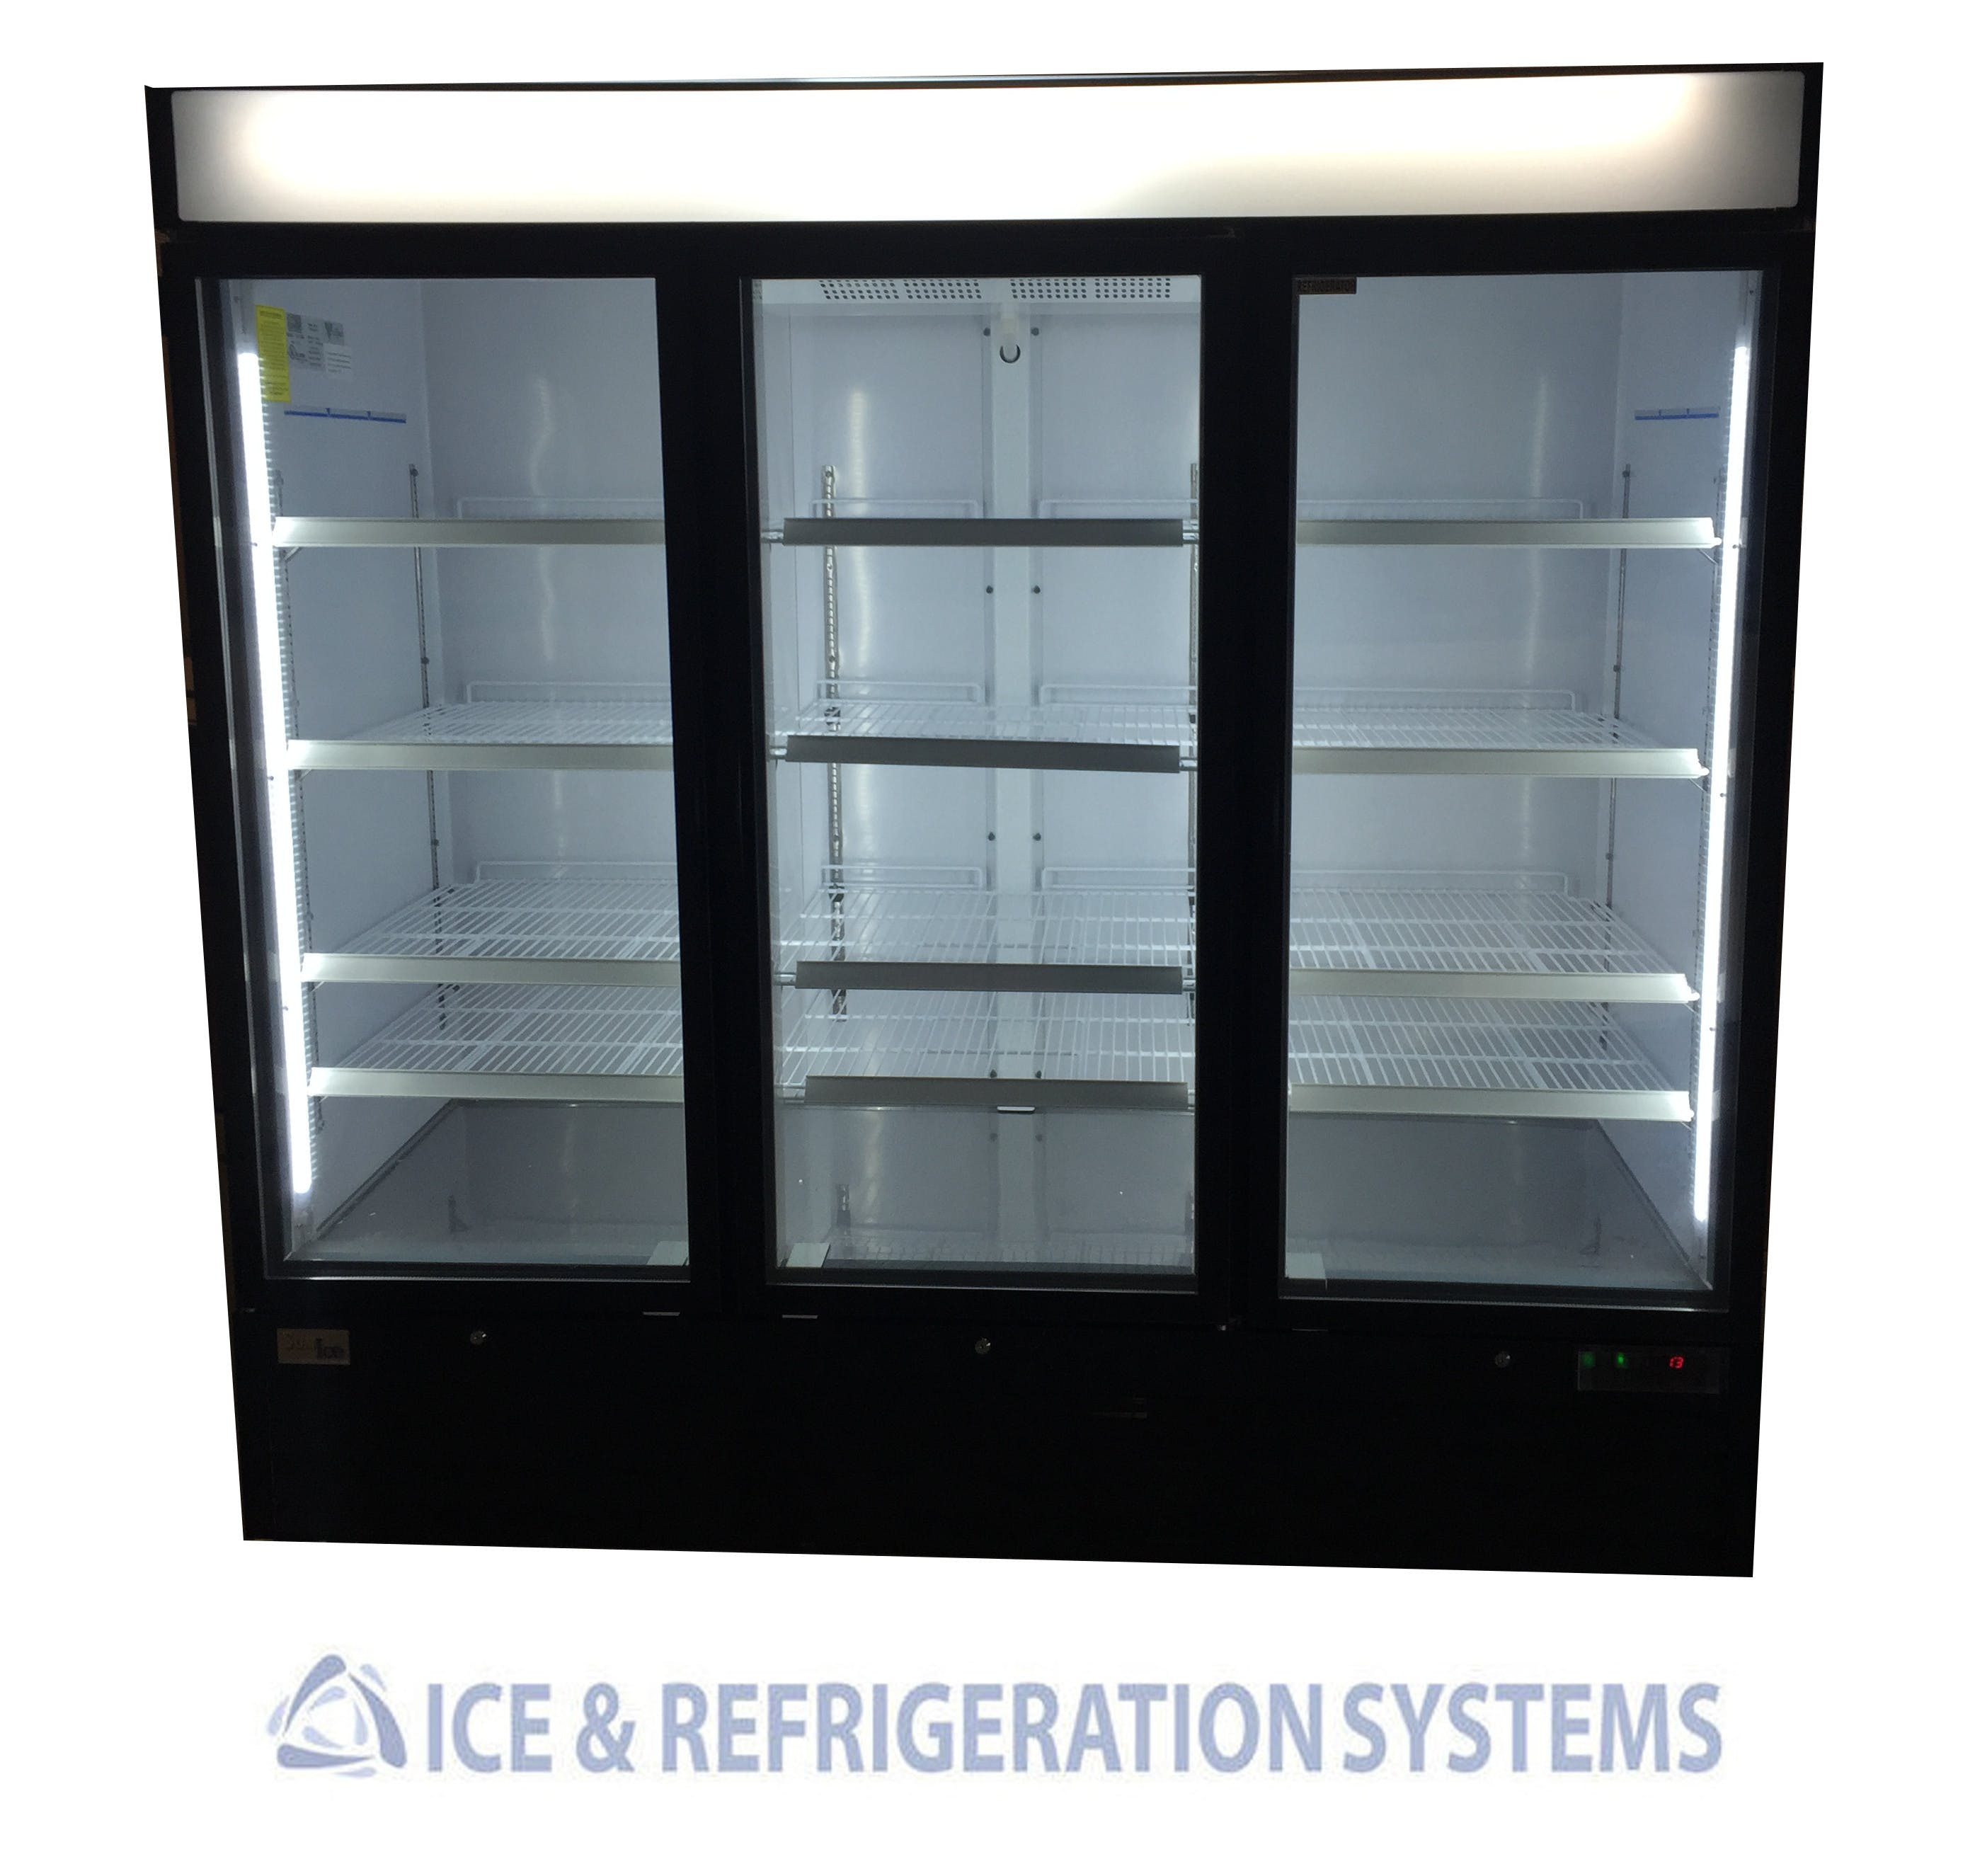 refrigerator and right wine bin cgi inch zero countertop display door capacity steel handle ajmadison center storage beverage bottle shelf spill star lcd in k adjustable certified glass with pro undercounter built stainless proof sub